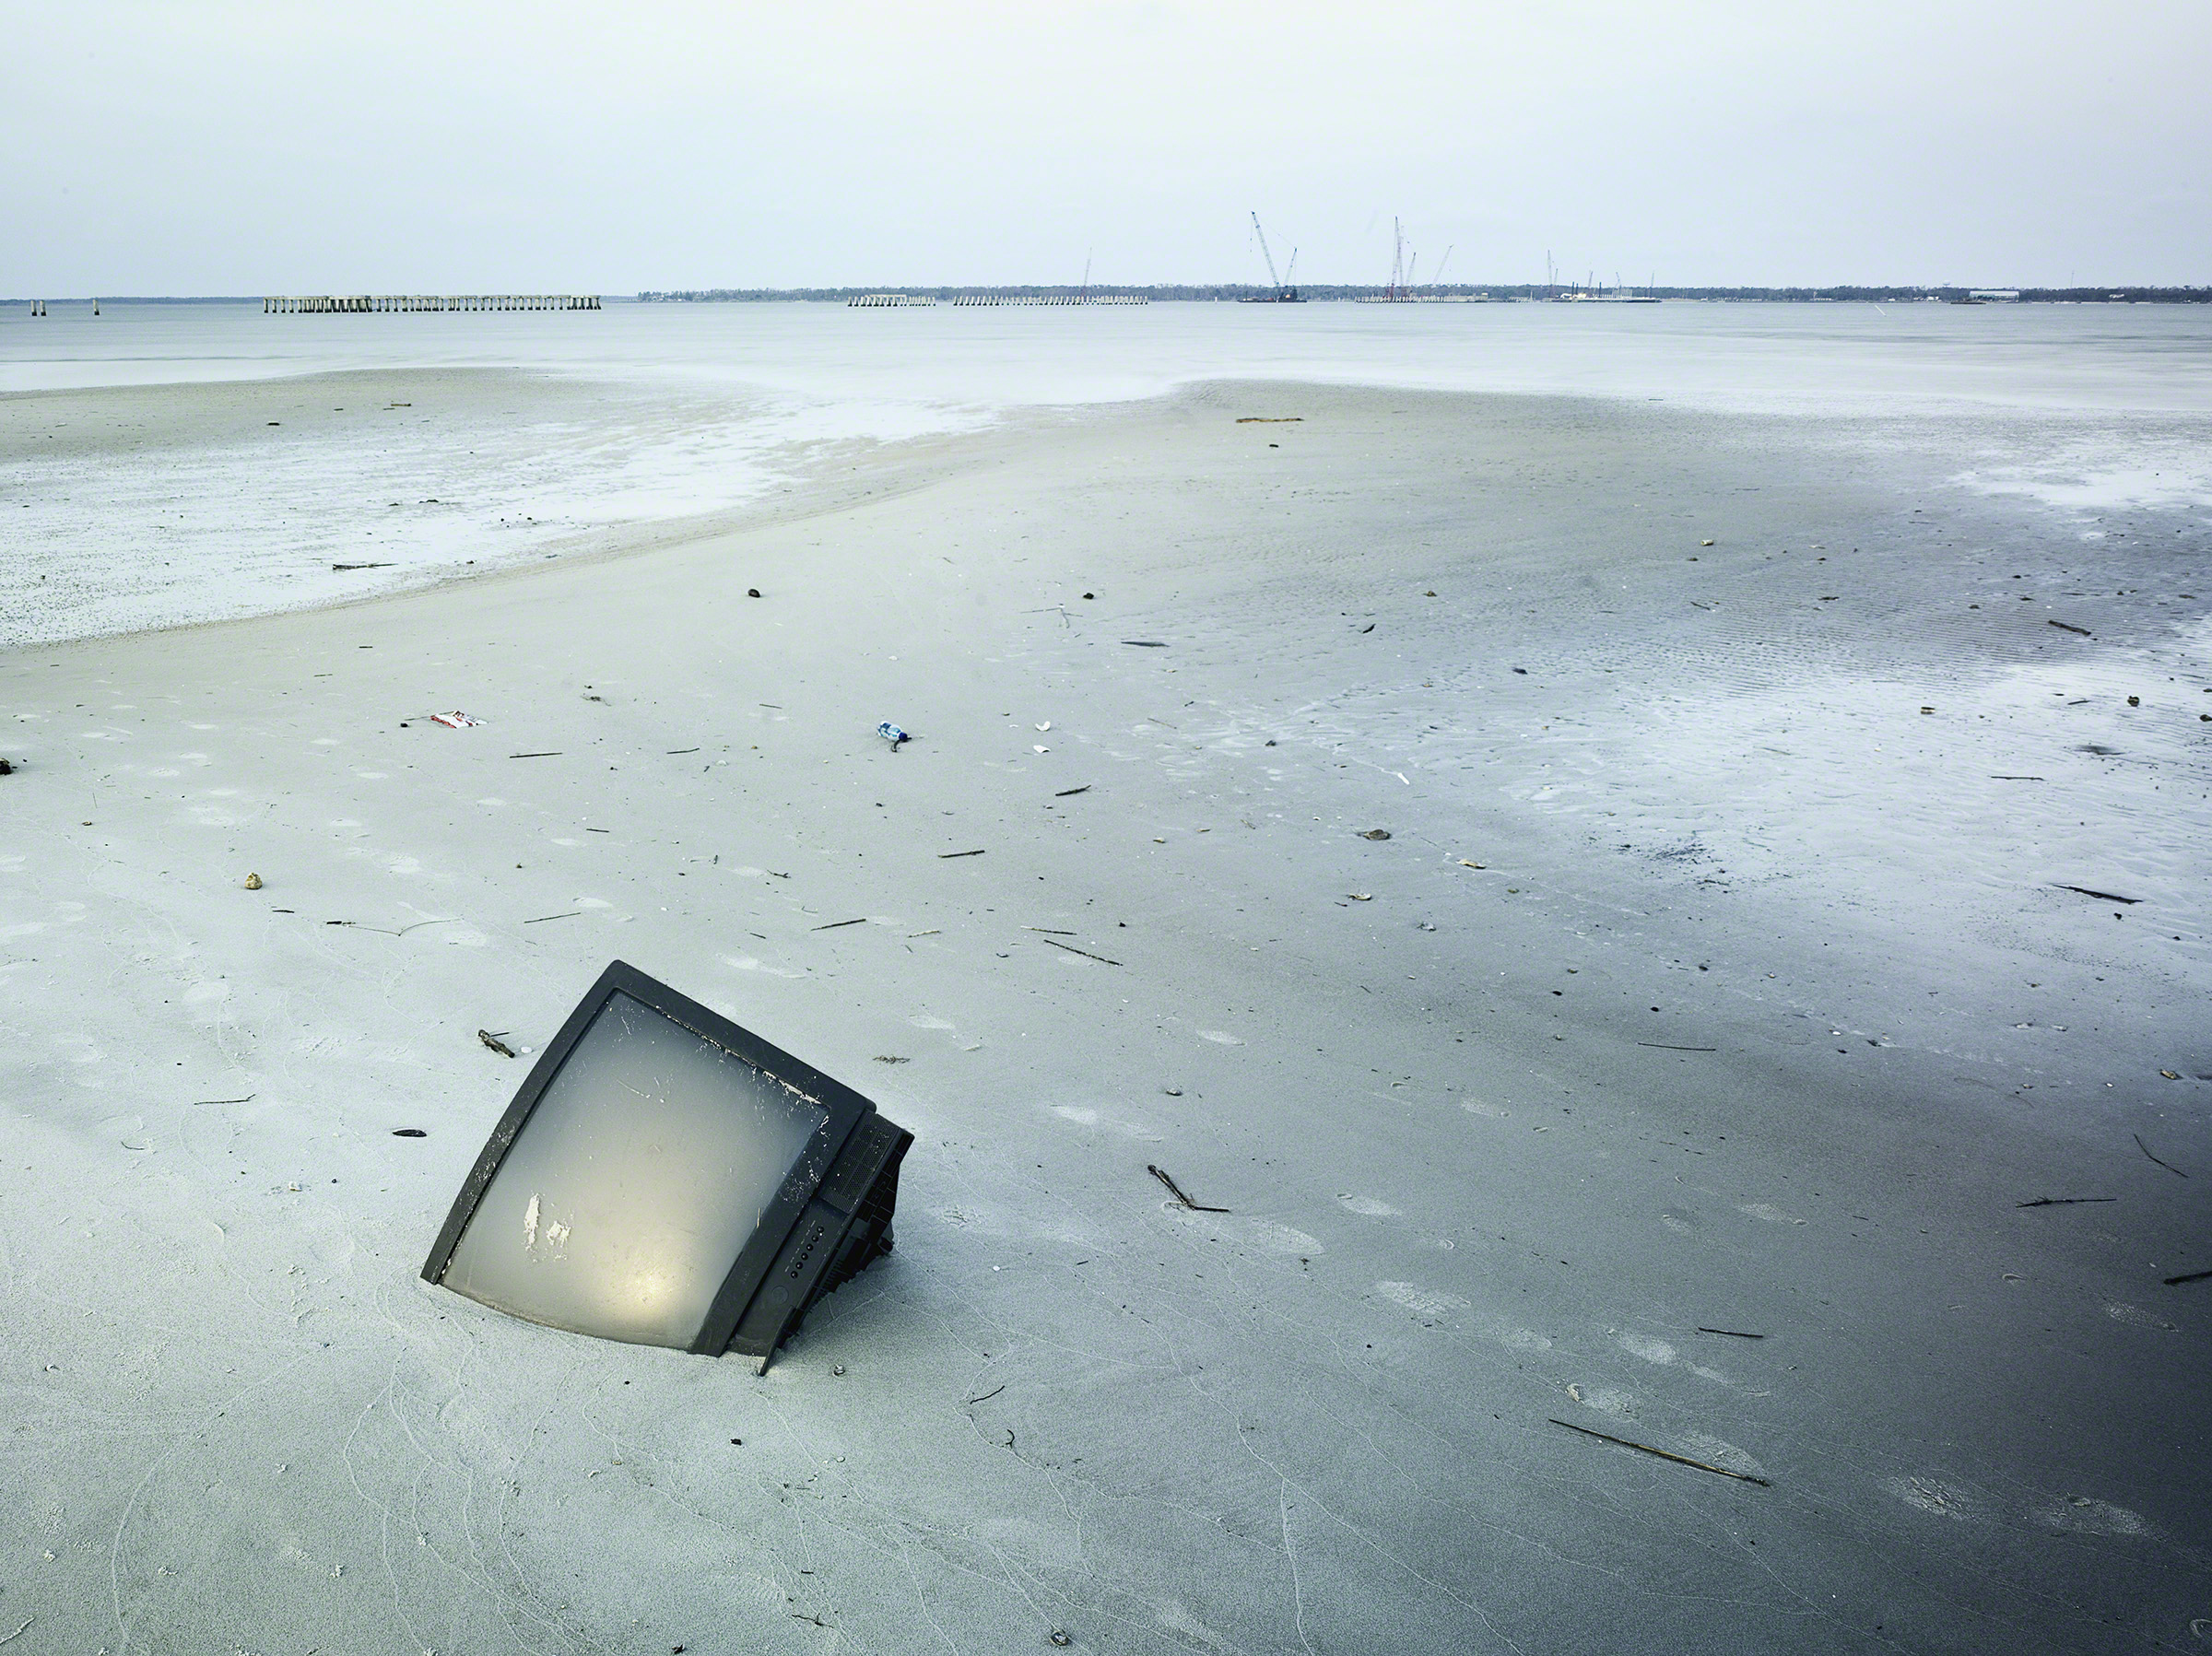 TV in the sand post Hurricane Katrina, Bay St. Louis, Mississippi, USA. Photo: Stephen Wilke